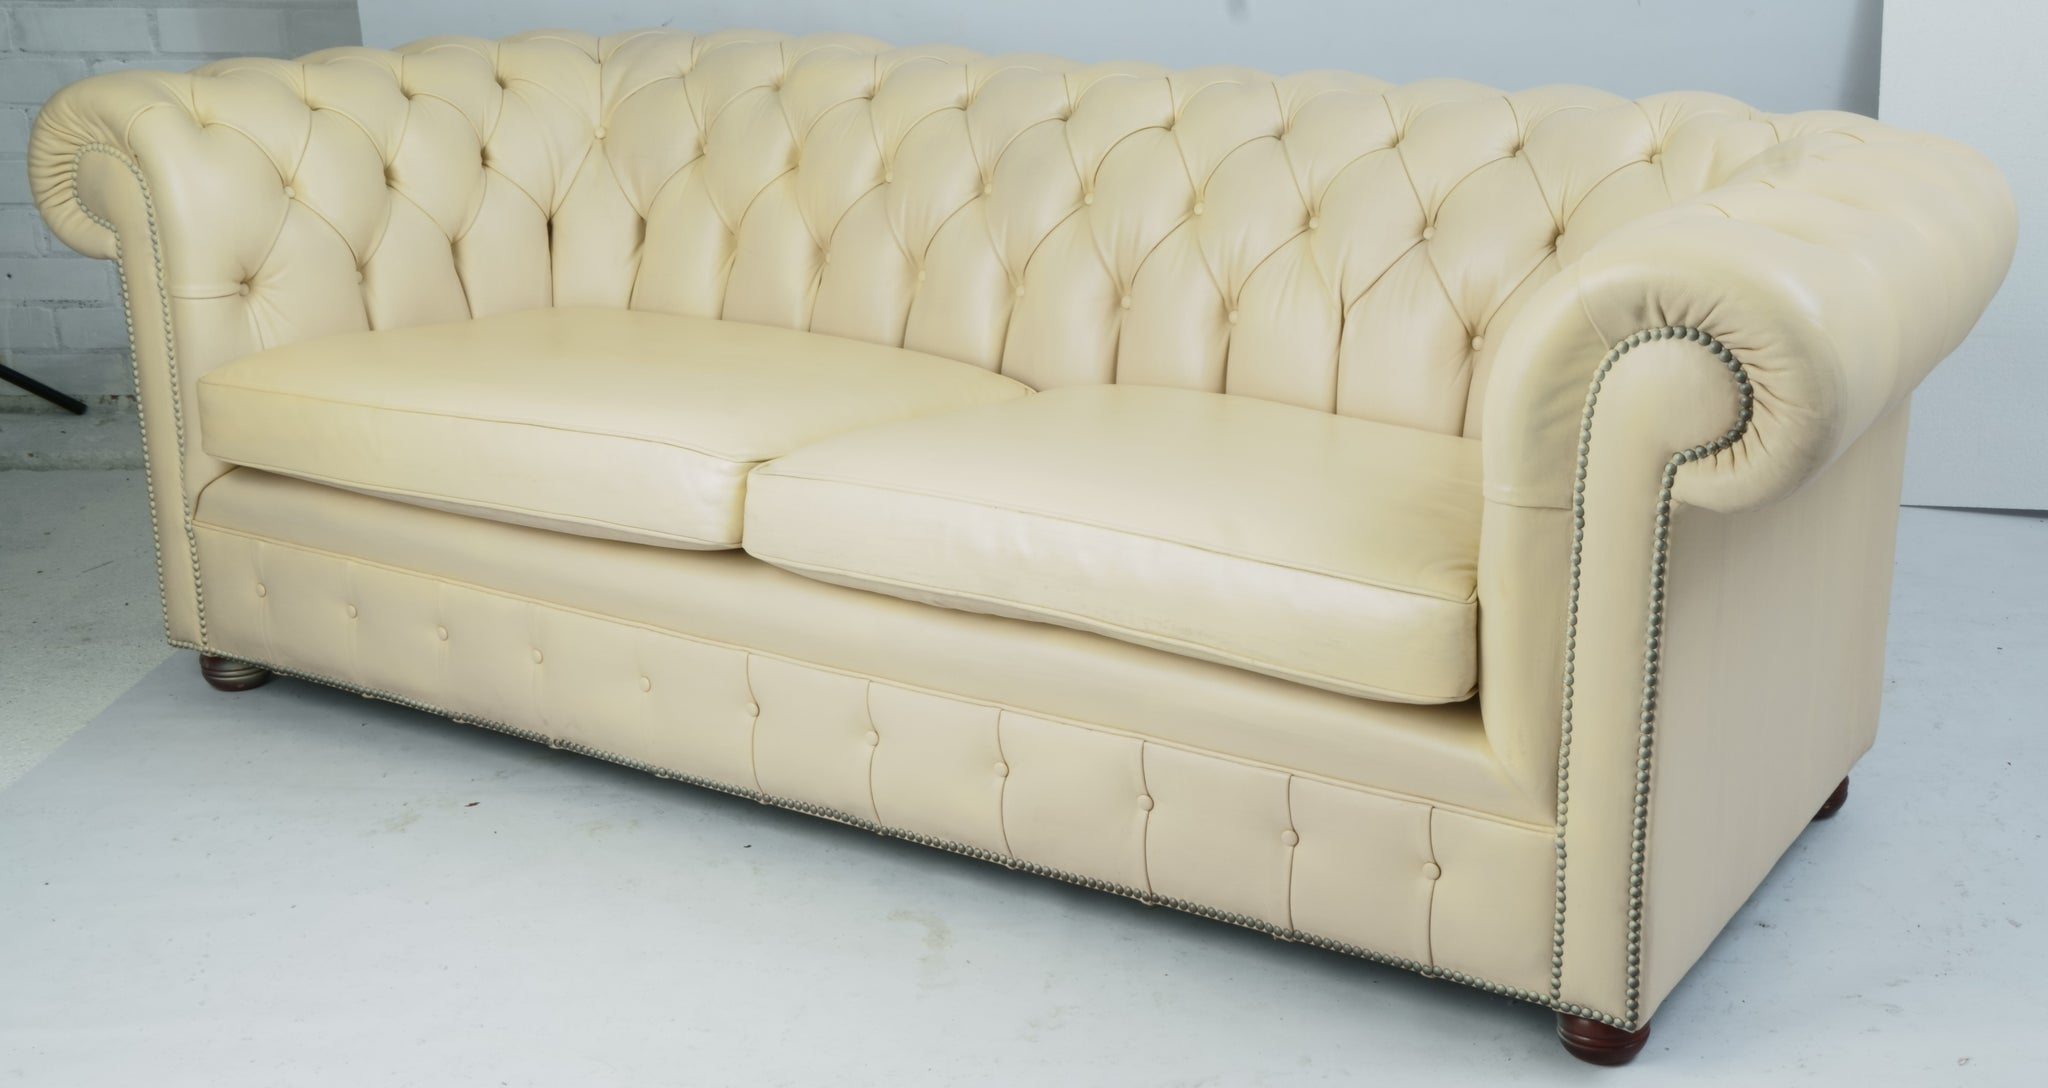 Tweedehands design 3-zits Chesterfield bank